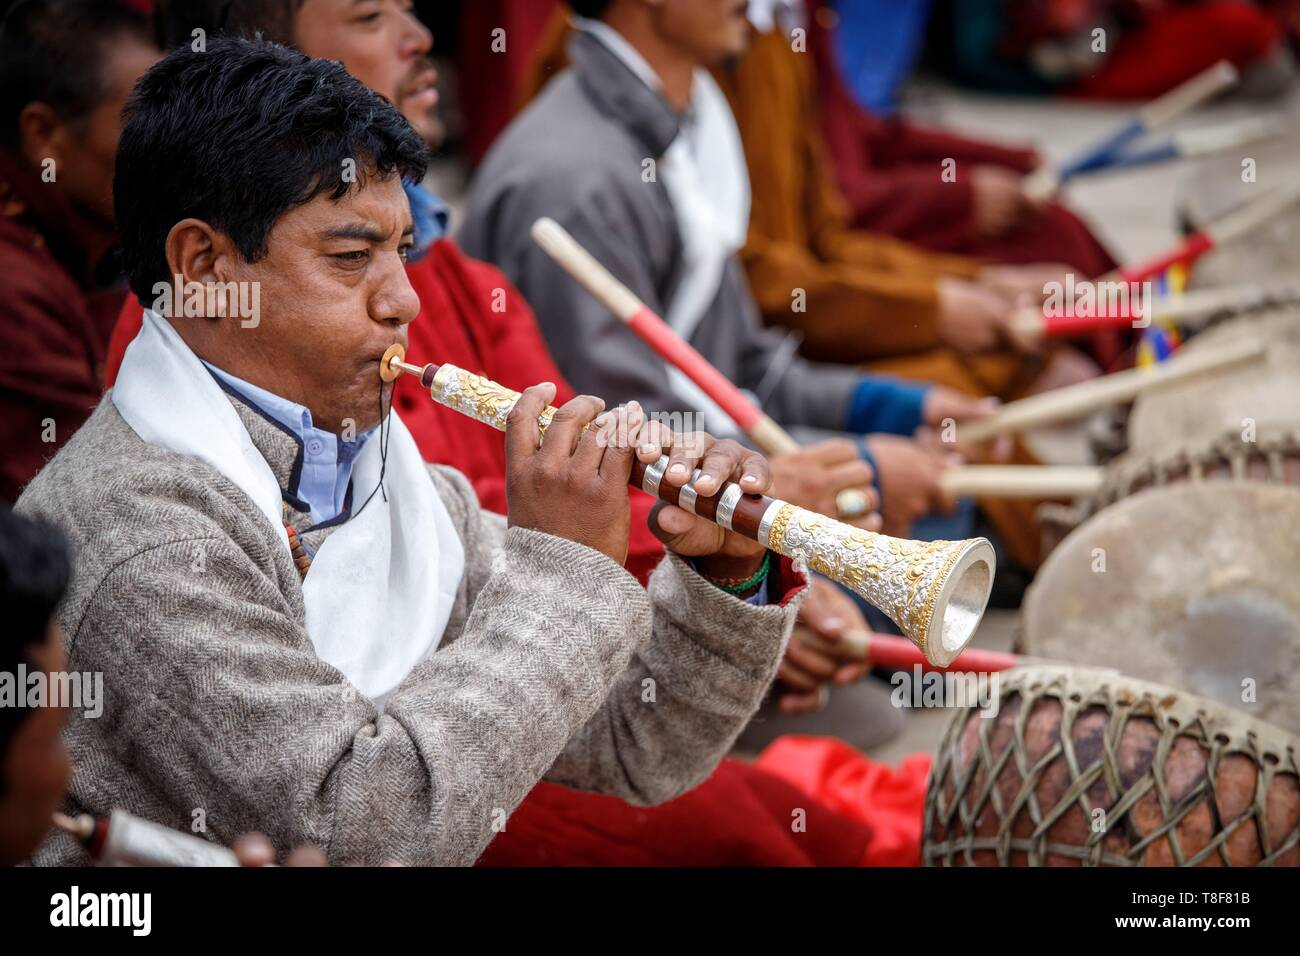 India, state of Jammu and Kashmir, Himalaya, Ladakh, Indus Valley, Leh, annual Ladakh Festival, to accompany the dancers a musician plays his gyalings, an oboe circled with copper and silver - Stock Image